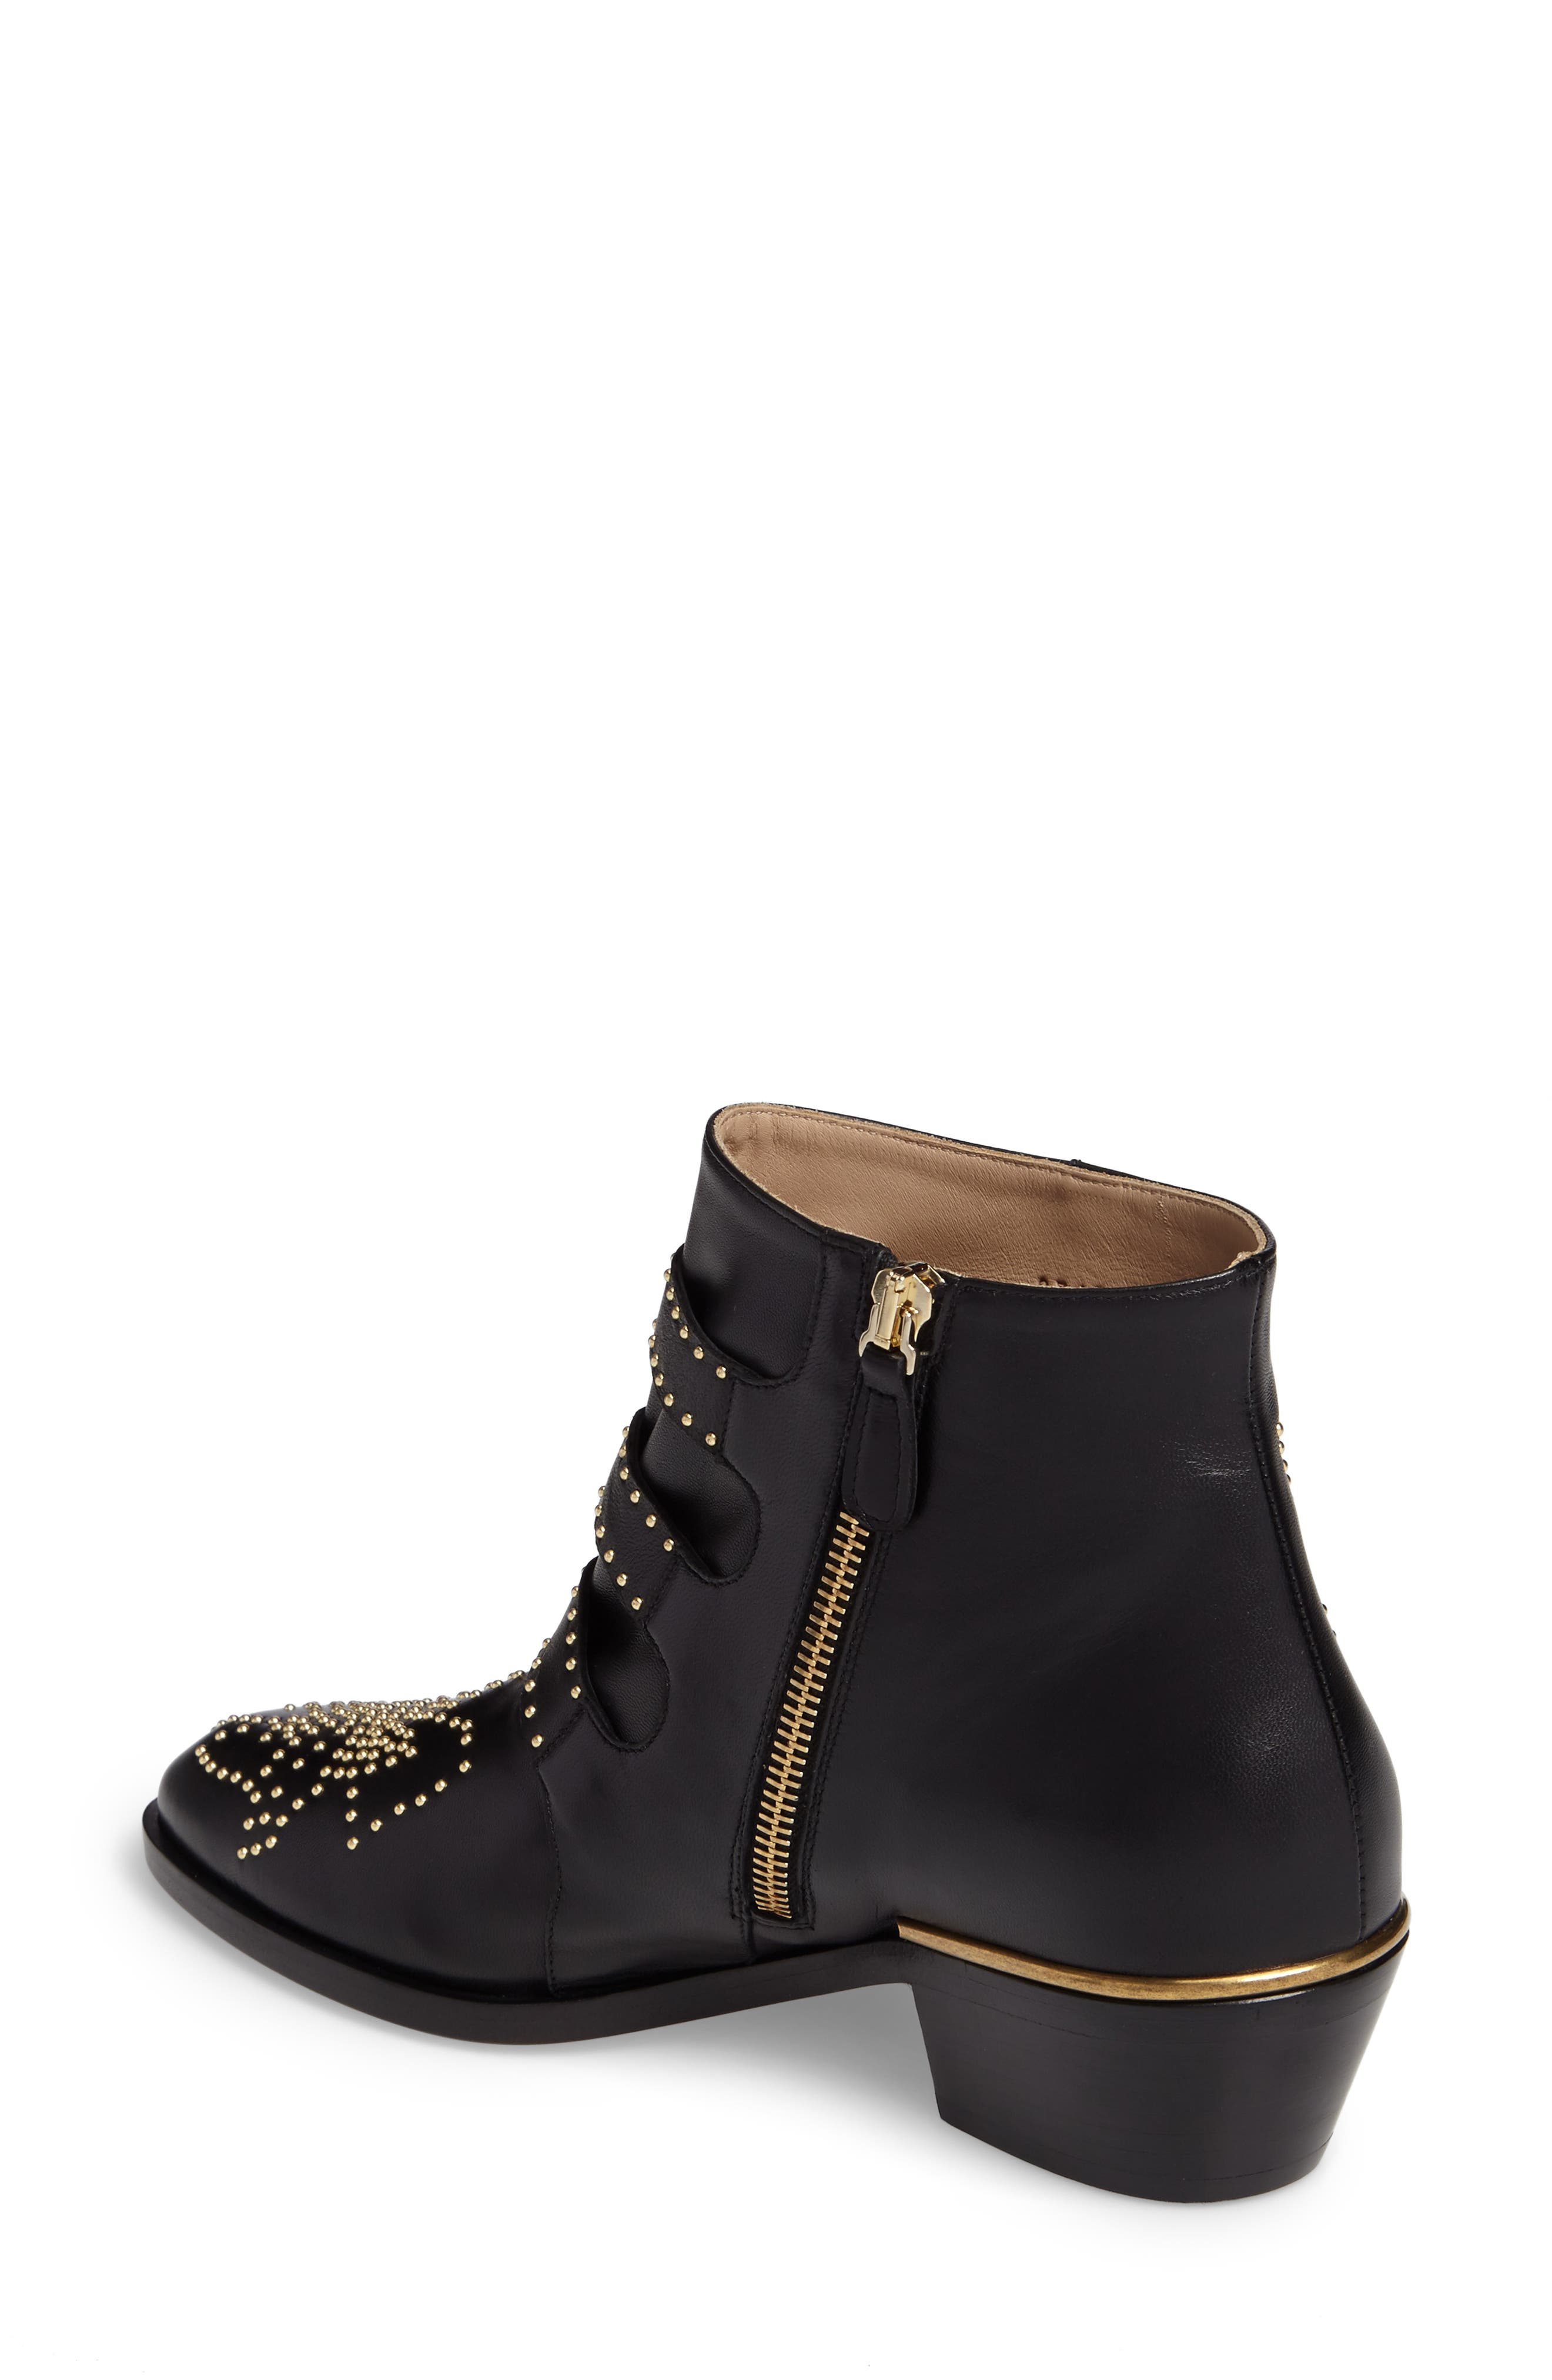 Alternate Image 2  - Chloé Susanna Stud Buckle Bootie (Women)